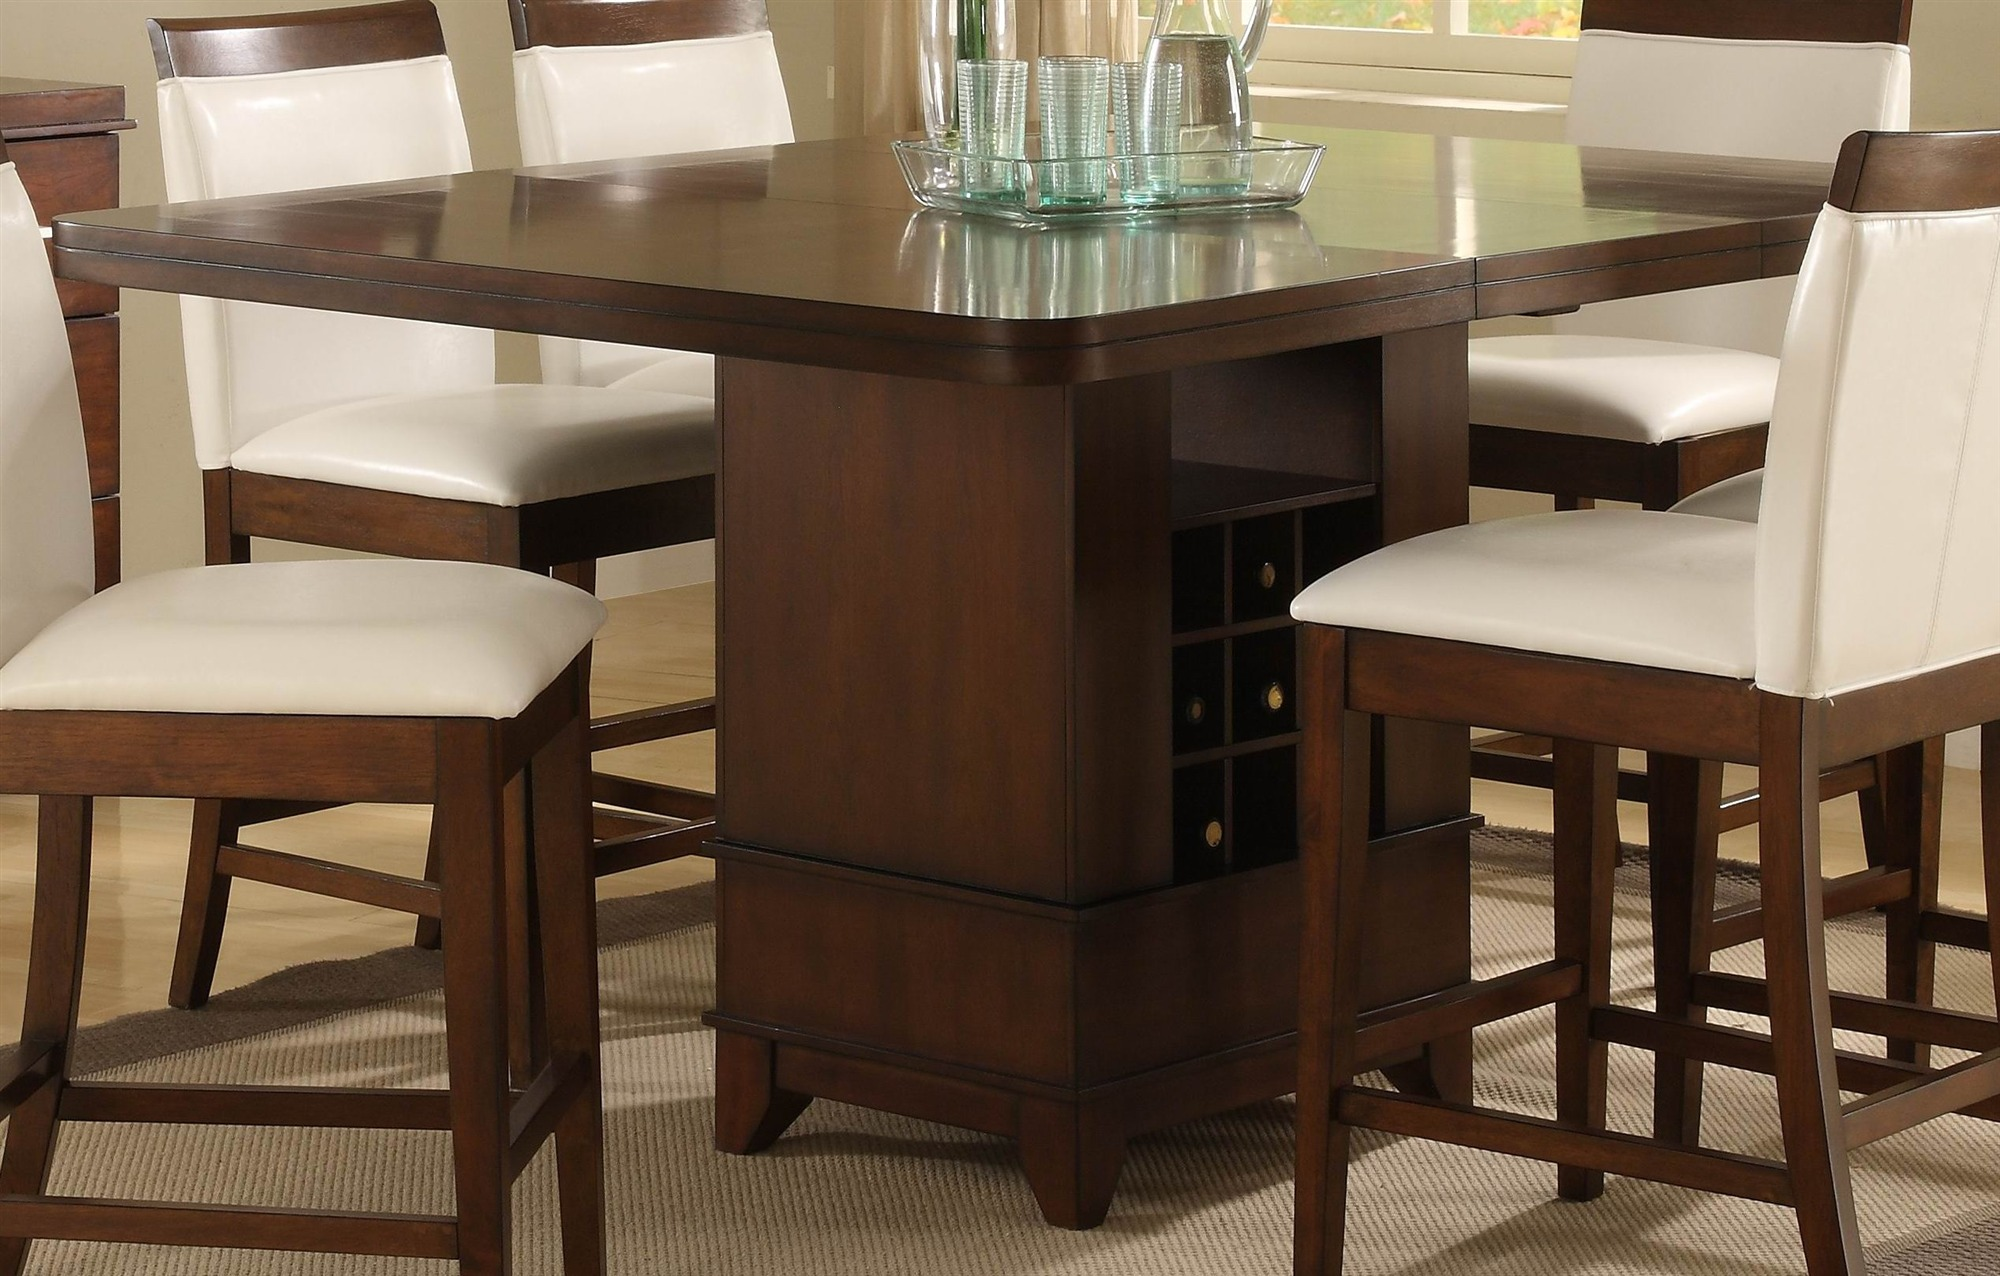 Square Dining Table square dining table for 4 | homesfeed